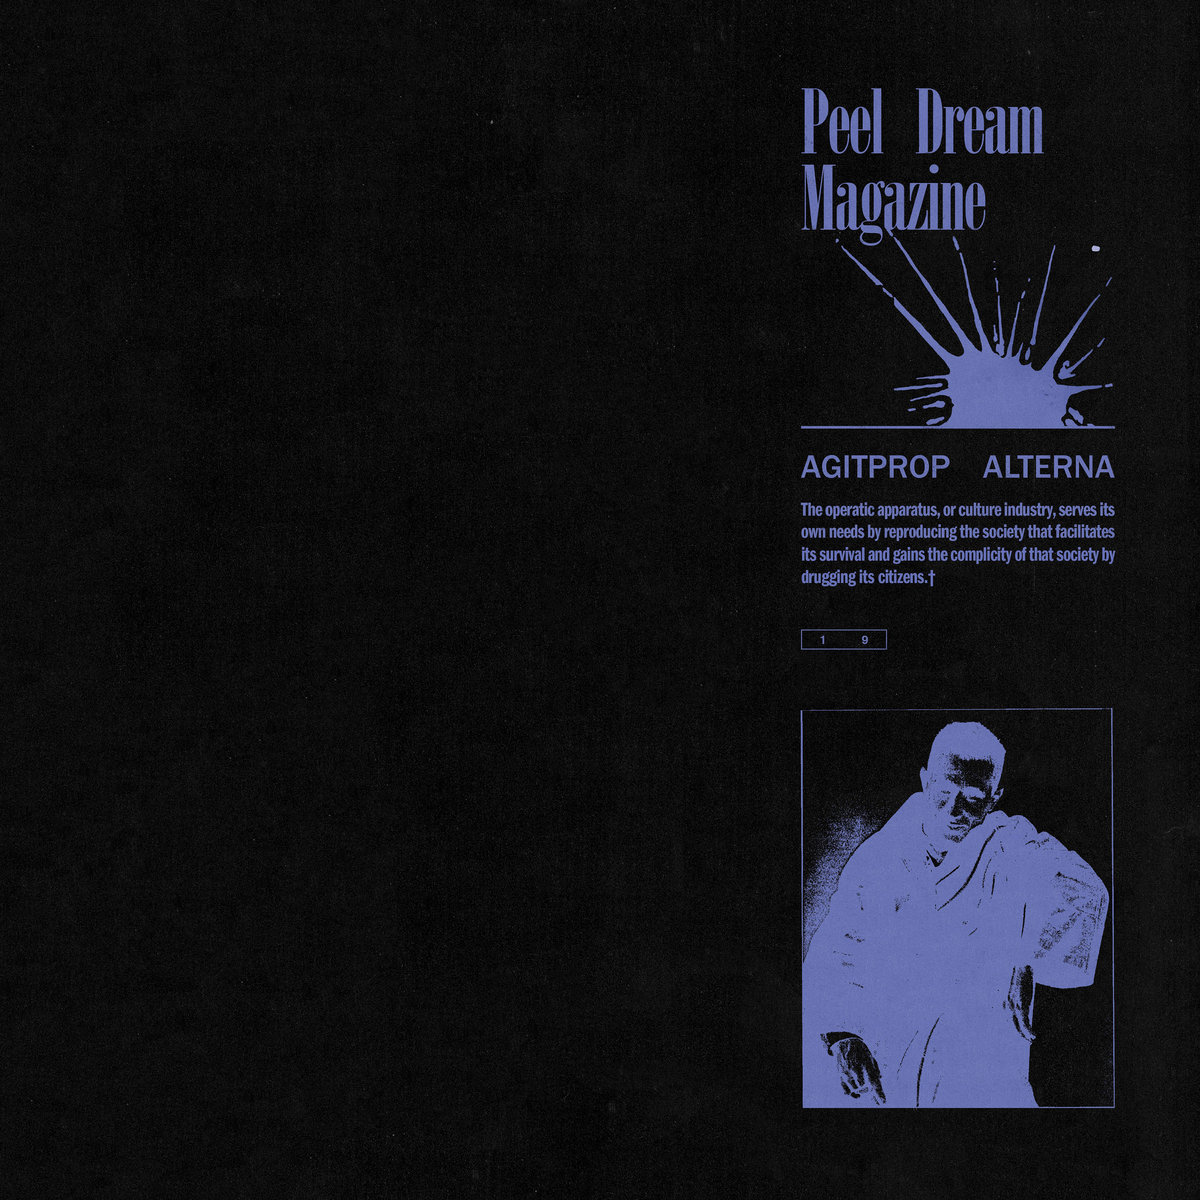 pochette de l'album Agitprop alterna du groupe Peel Dream Magazine